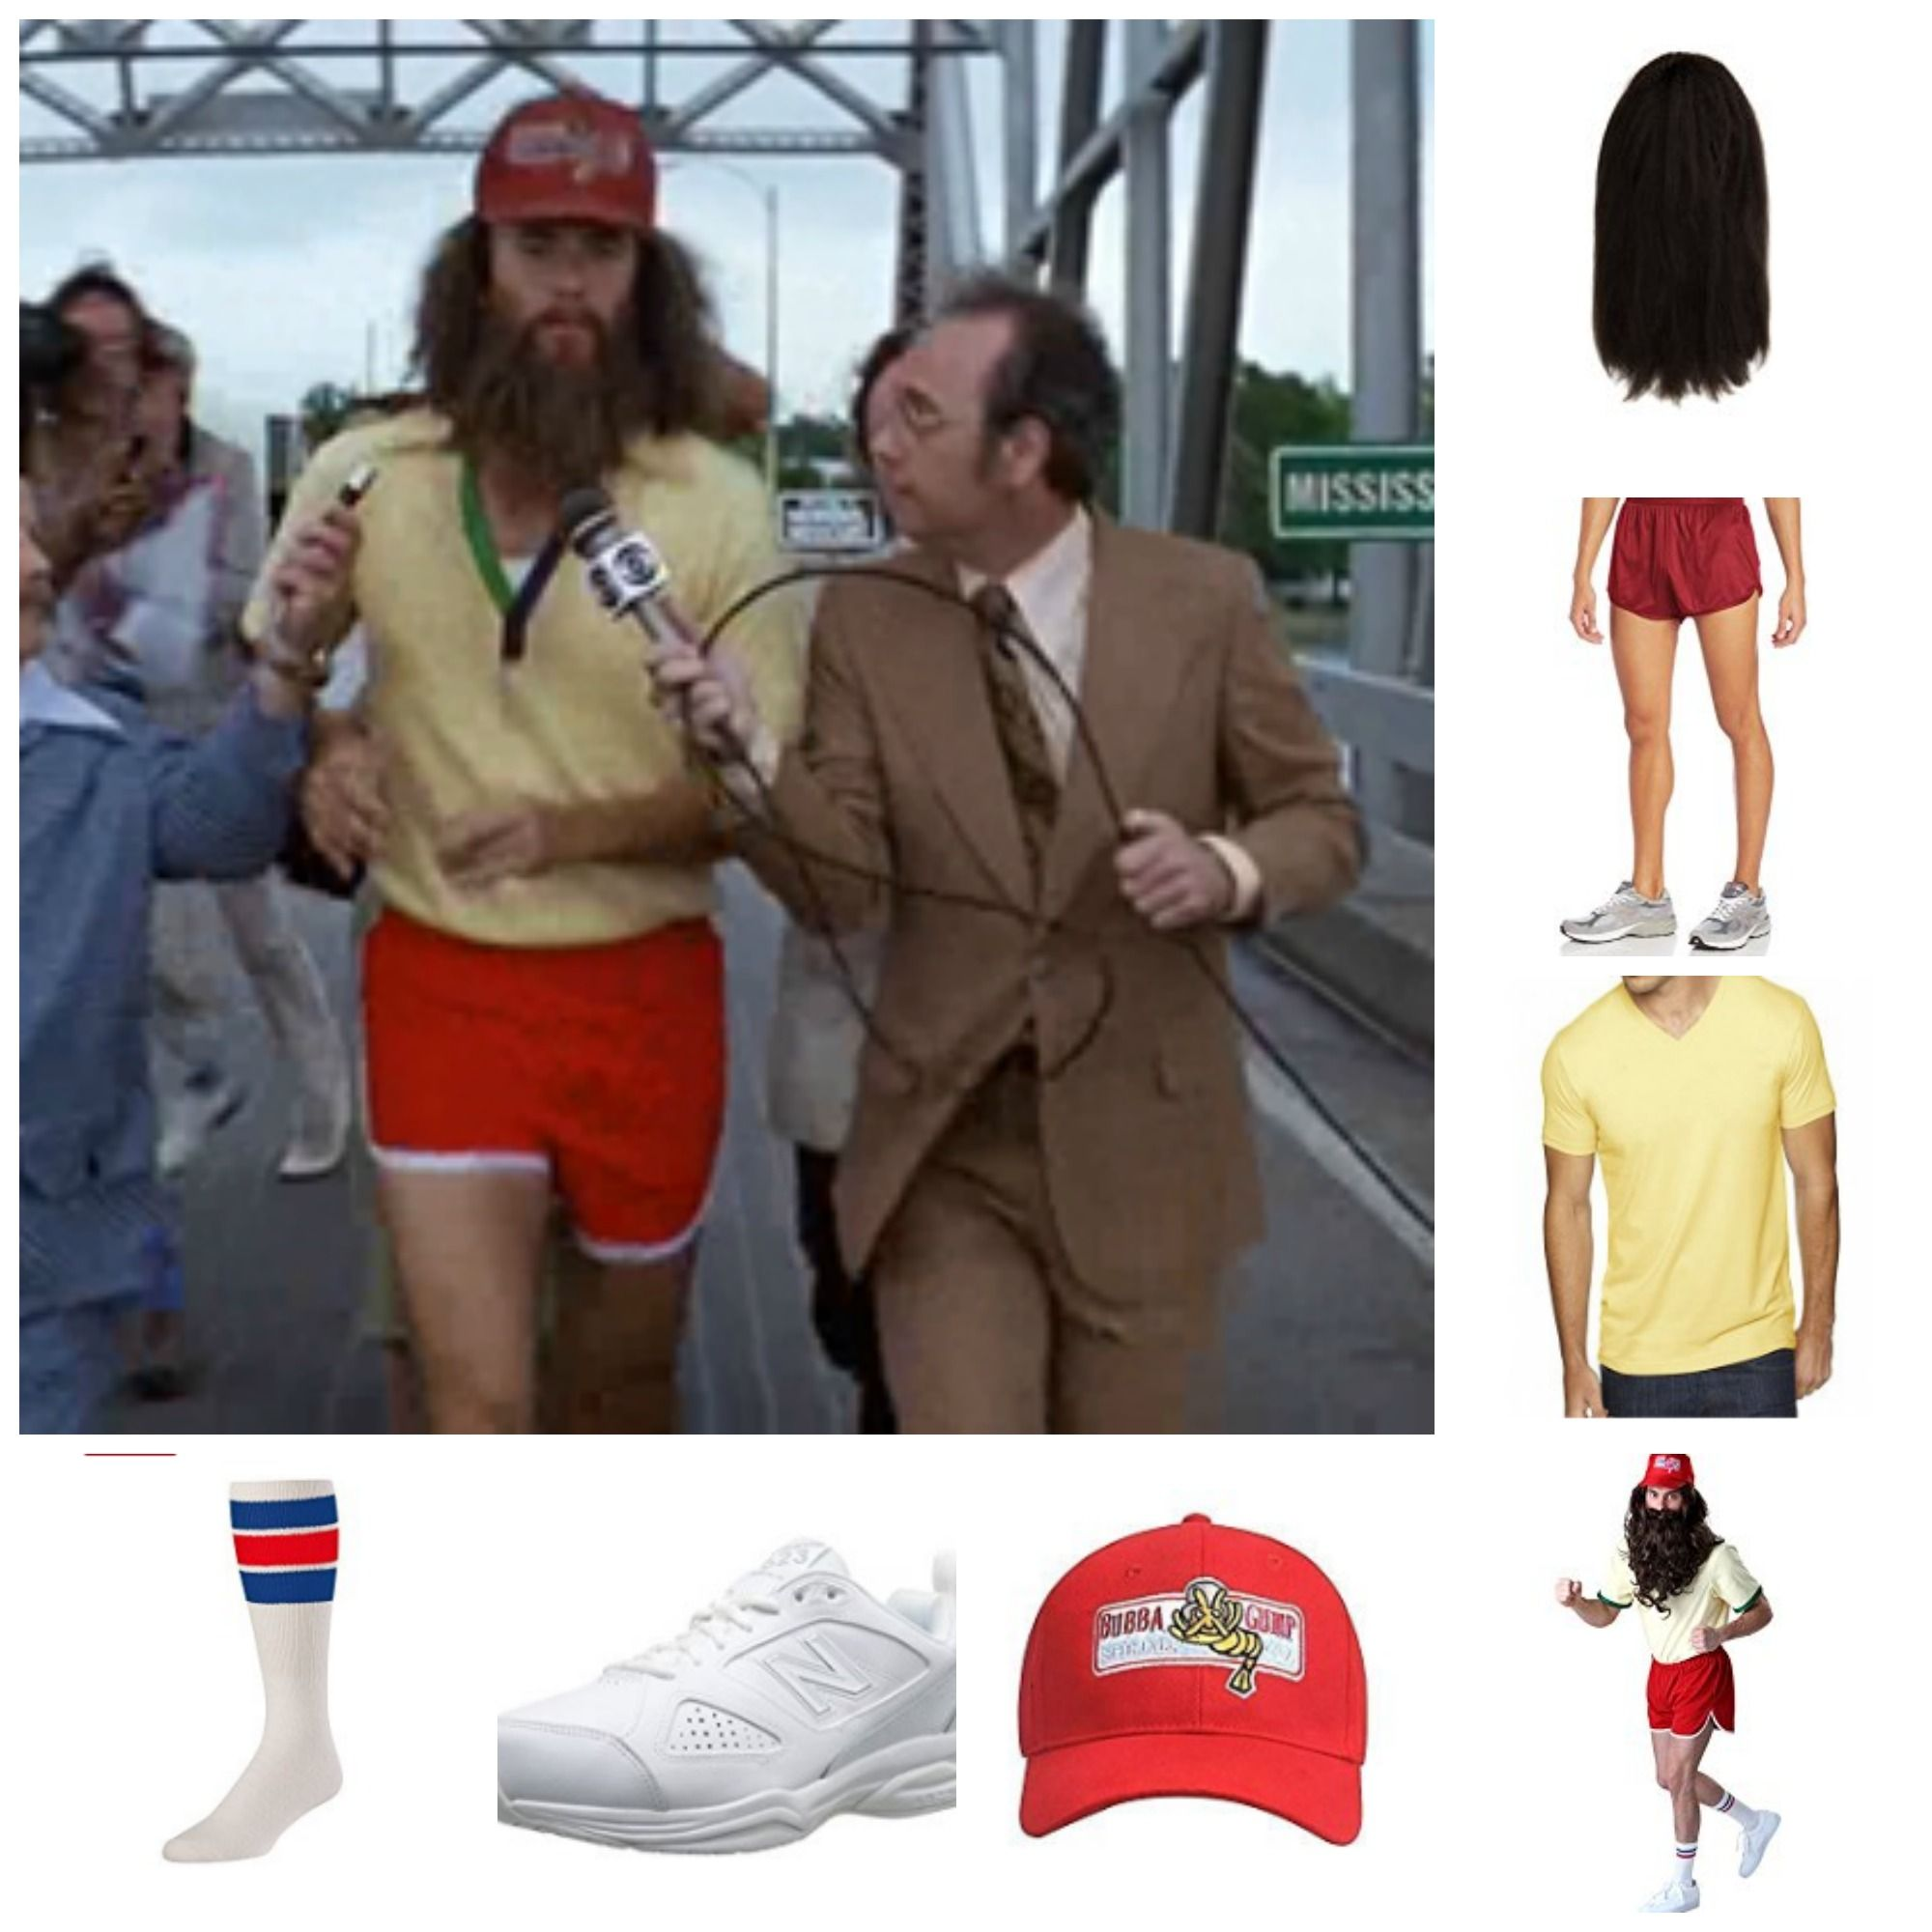 Forrest Gump Halloween Costume for Guys with Beards | Bearded ...